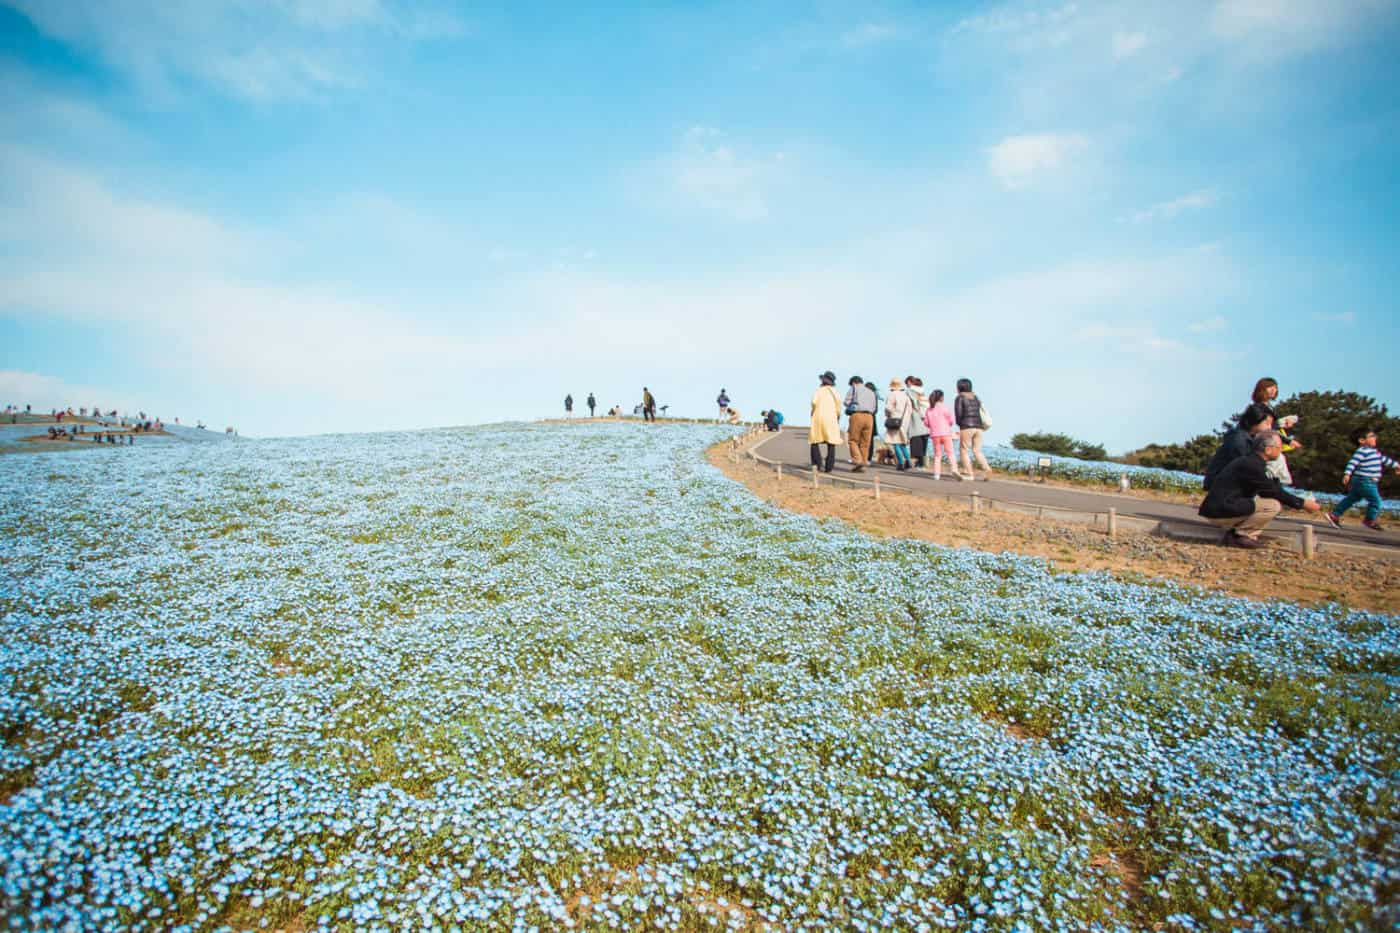 Hitachi Seaside Park day trip from Tokyo